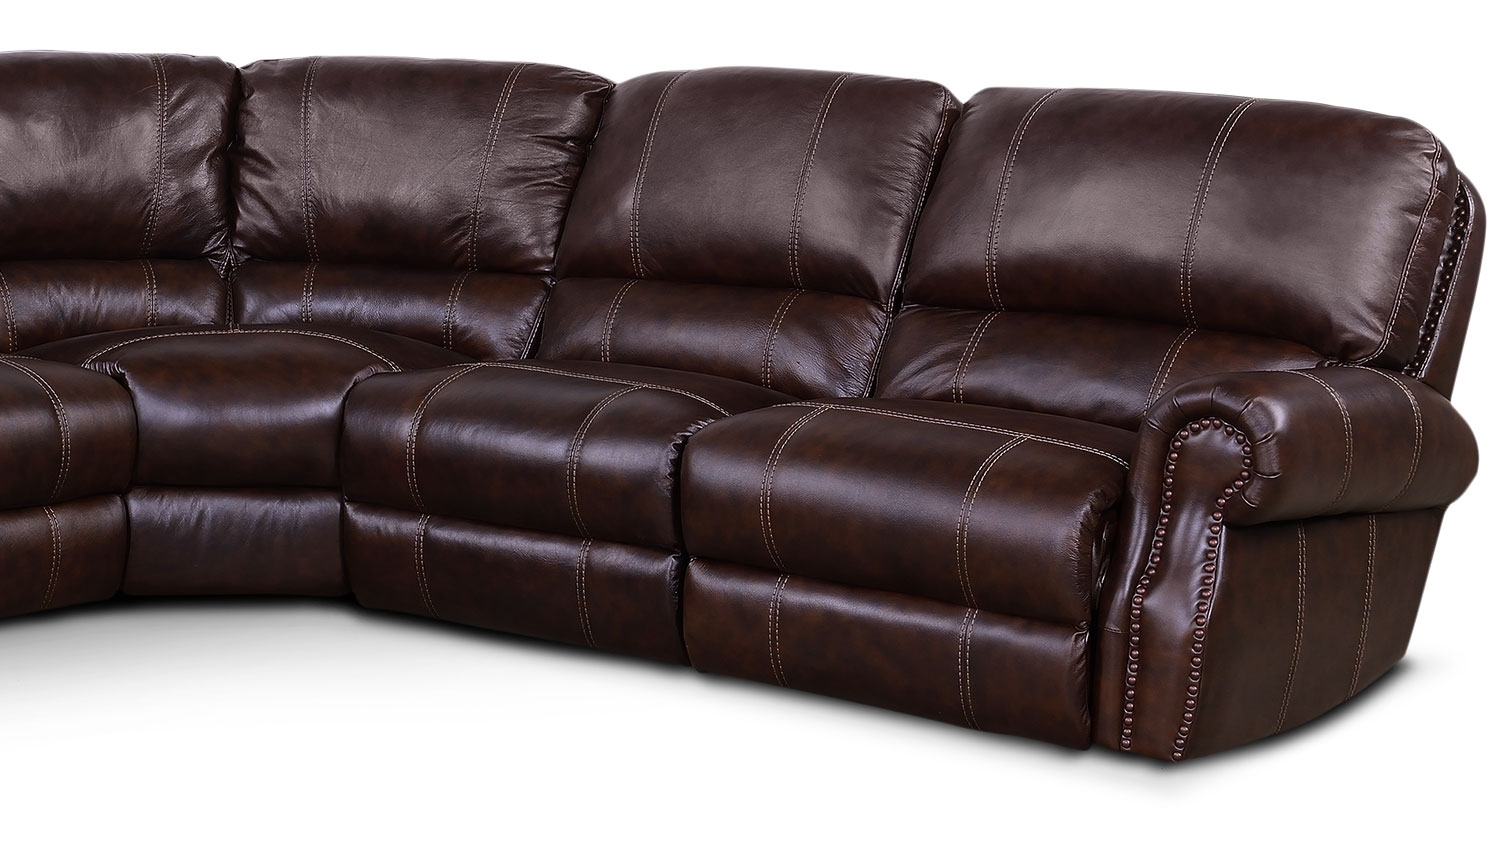 Dartmouth 6 Piece Power Reclining Sectional W/ Left Facing Chaise For Norfolk Chocolate 6 Piece Sectionals (Image 10 of 25)